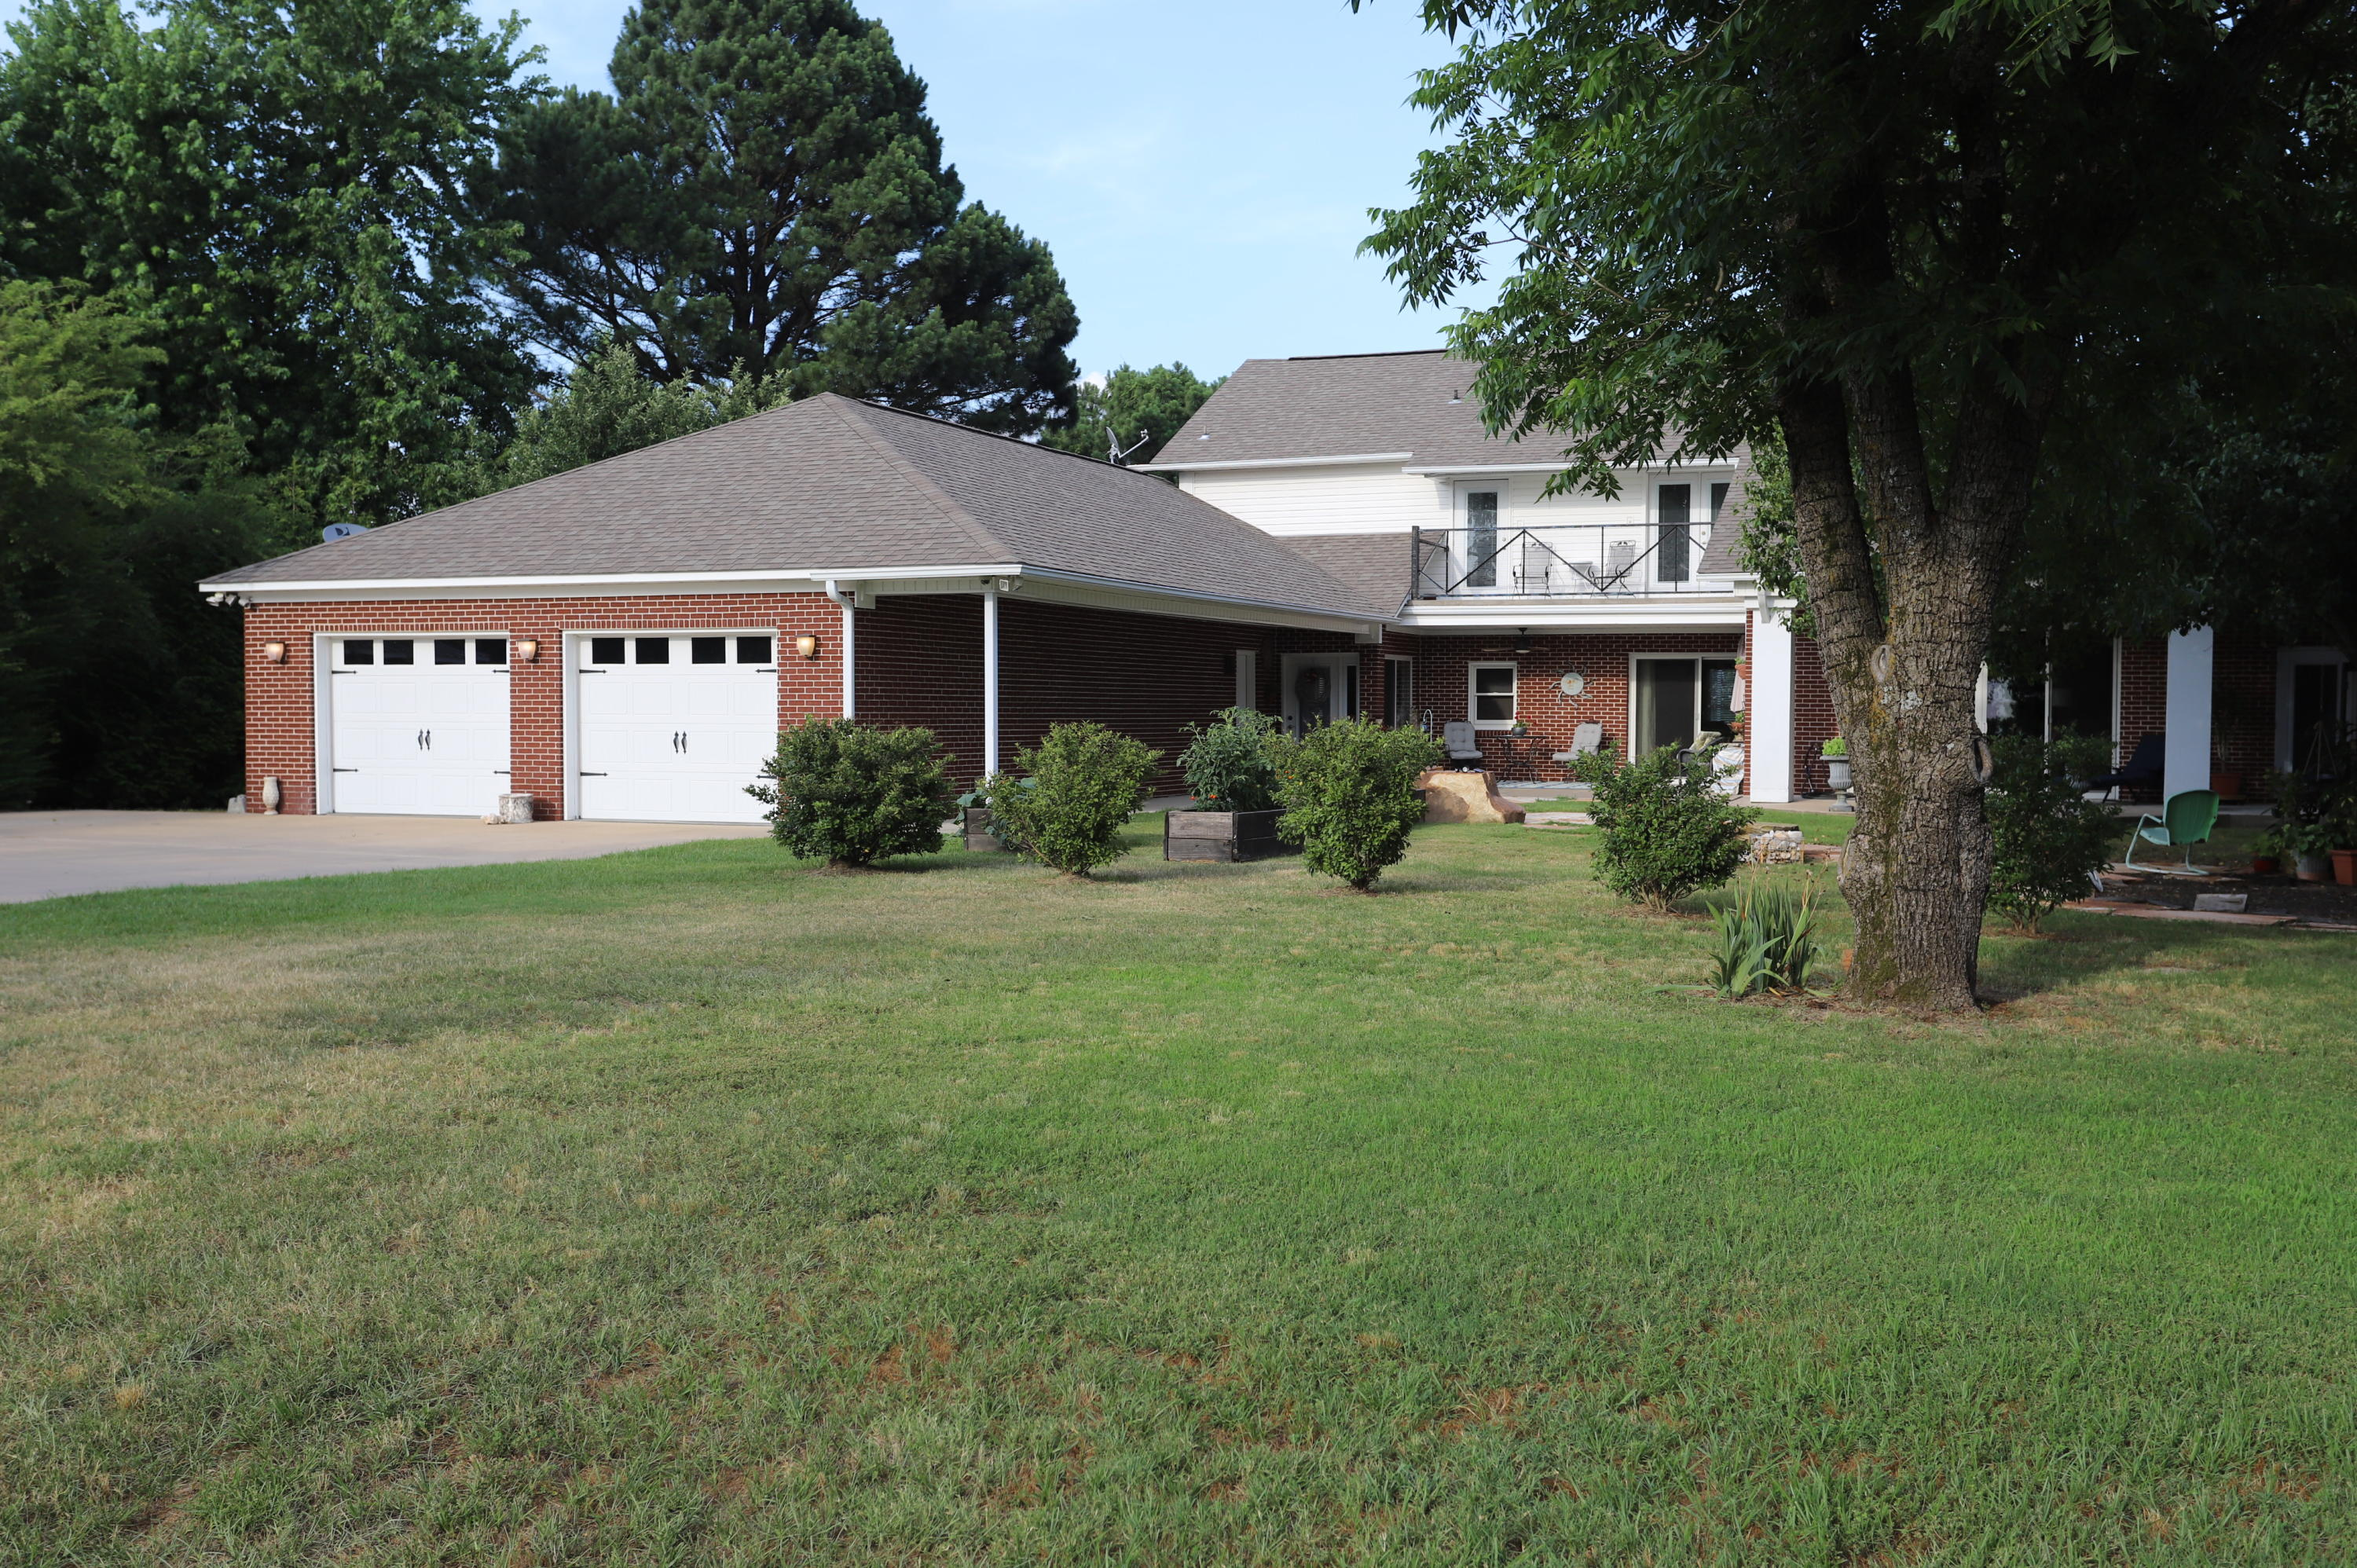 Large photo 3 of home for sale at 336 SKYLINE Drive, Russellville, AR